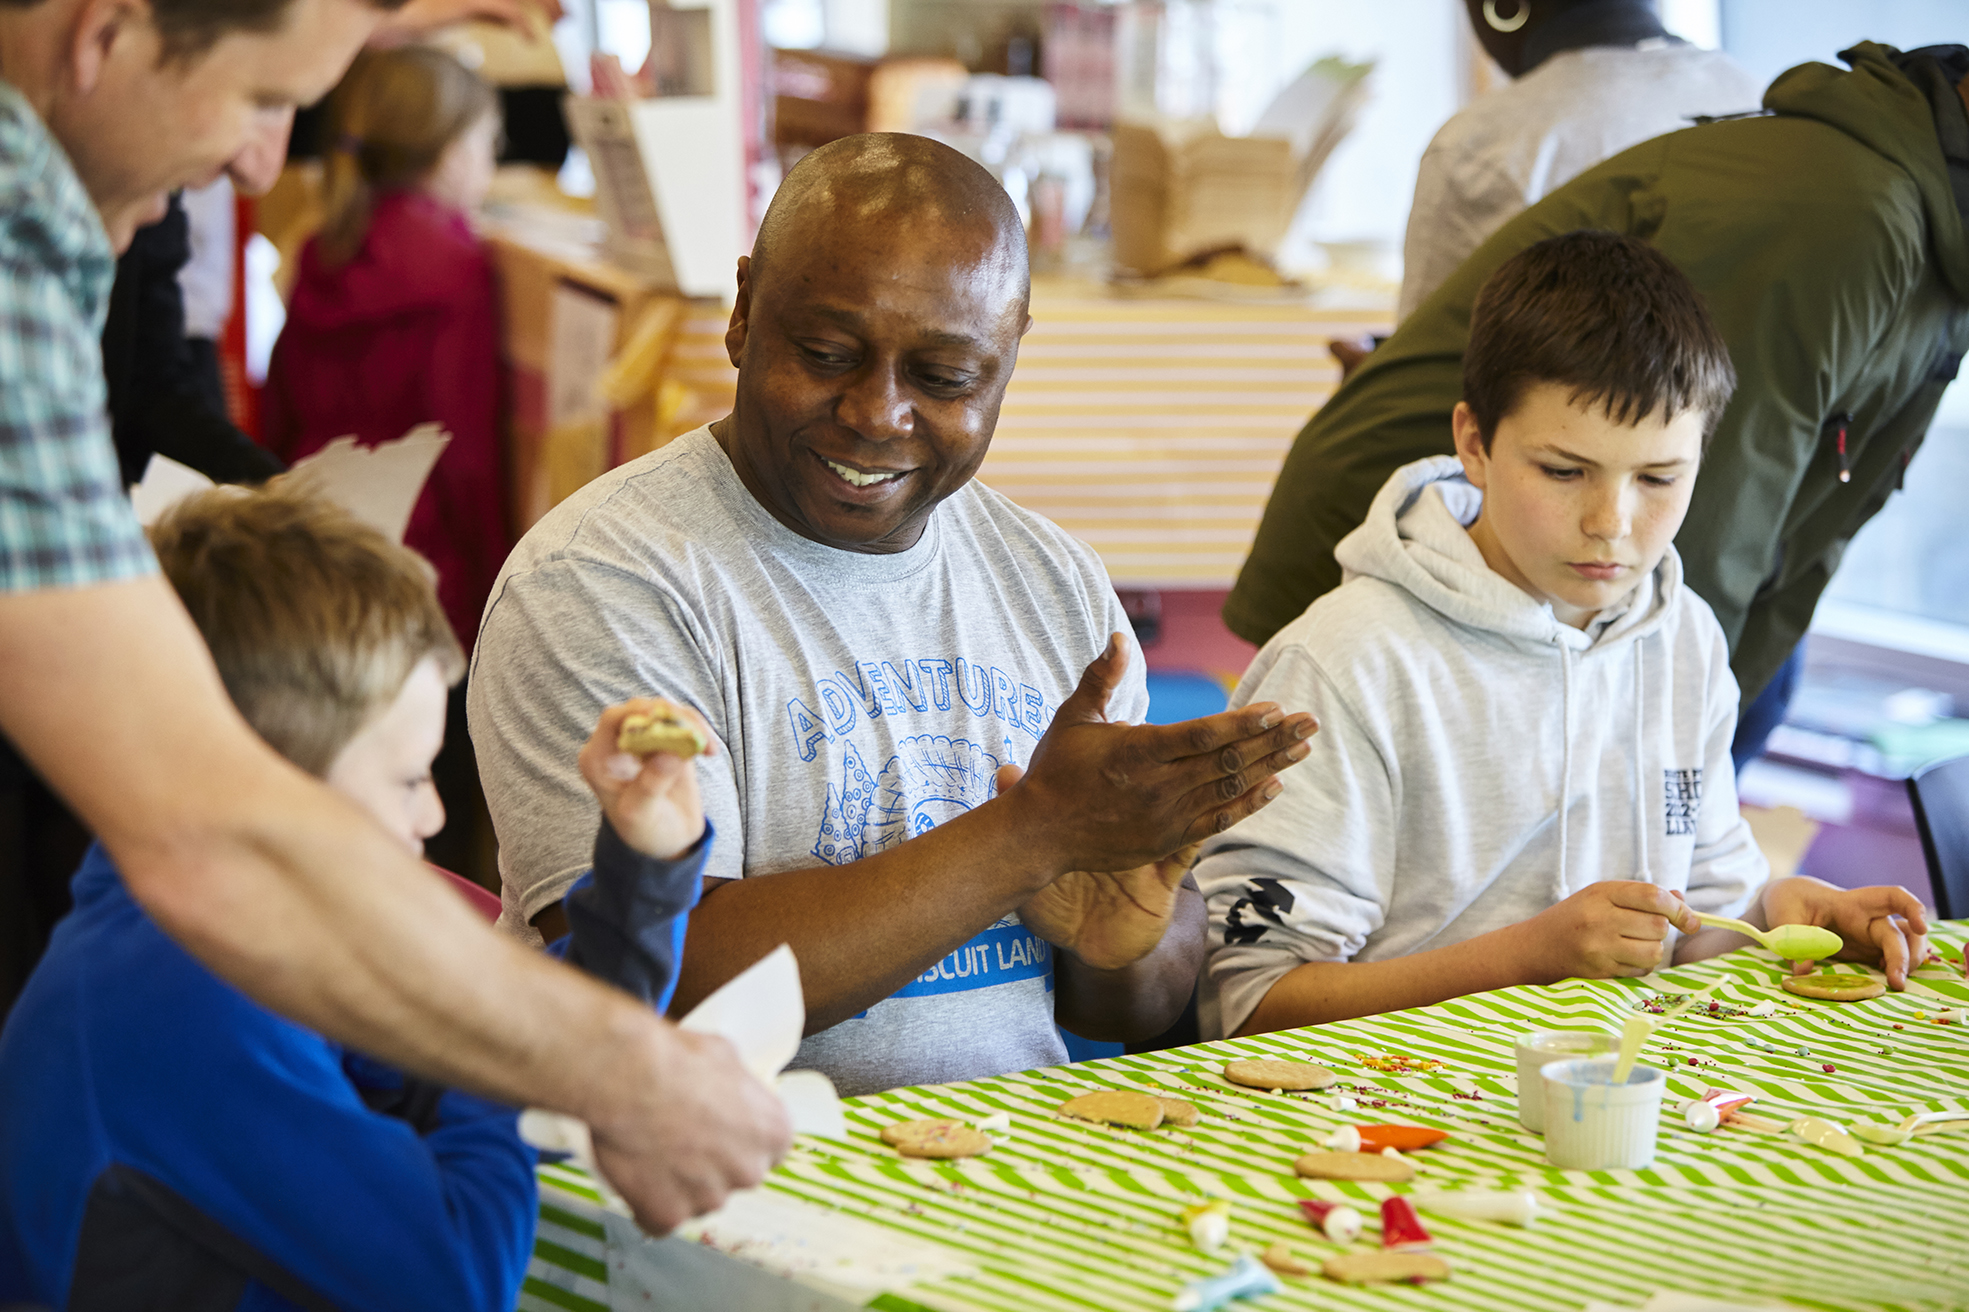 A photograph of David Ogwe sitting at a table with two young people at a Touretteshero event at the Tate. The table is covered with a green and white striped tablecloth and has biscuits, different coloured icing tubes and other cake decorating items. David is smiling and facing a child to his right who has just taken a bite out of his biscuit that he has decorated. The other child to David's right is decorating a rich tea biscuit with bright green icing.